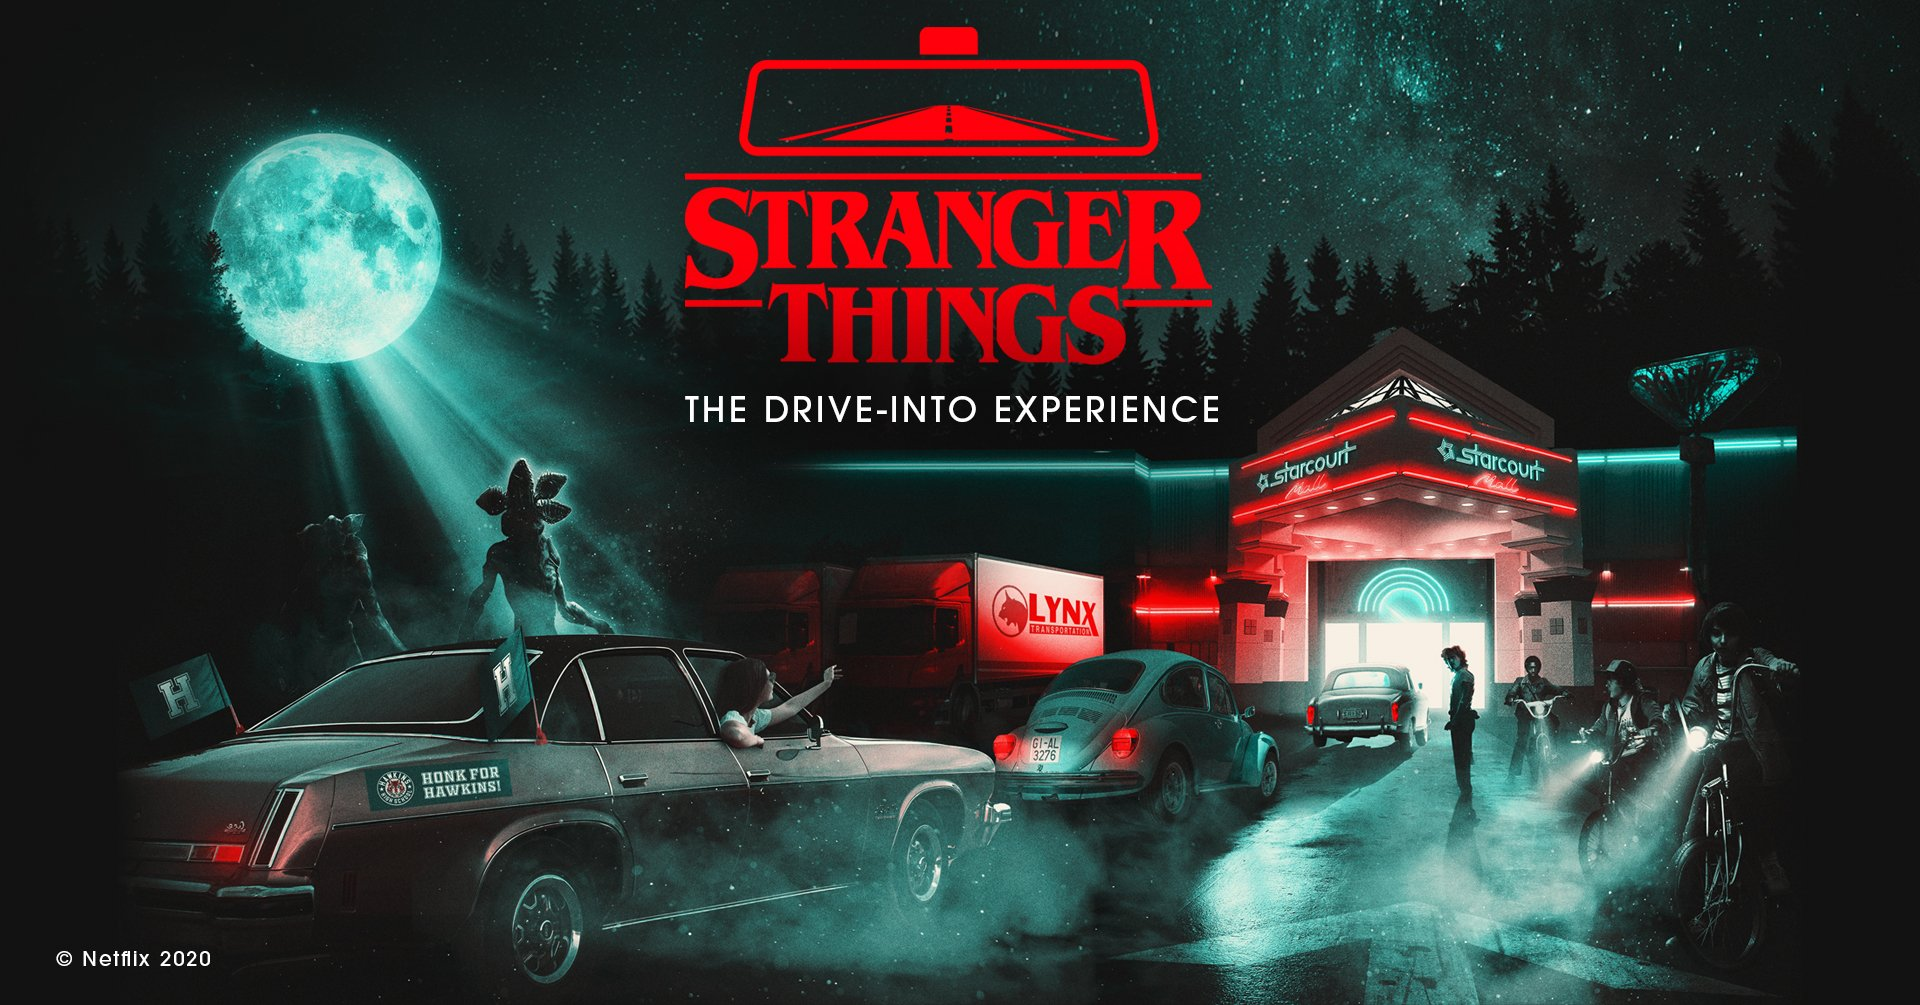 Stranger Things The Drive-Into Experience